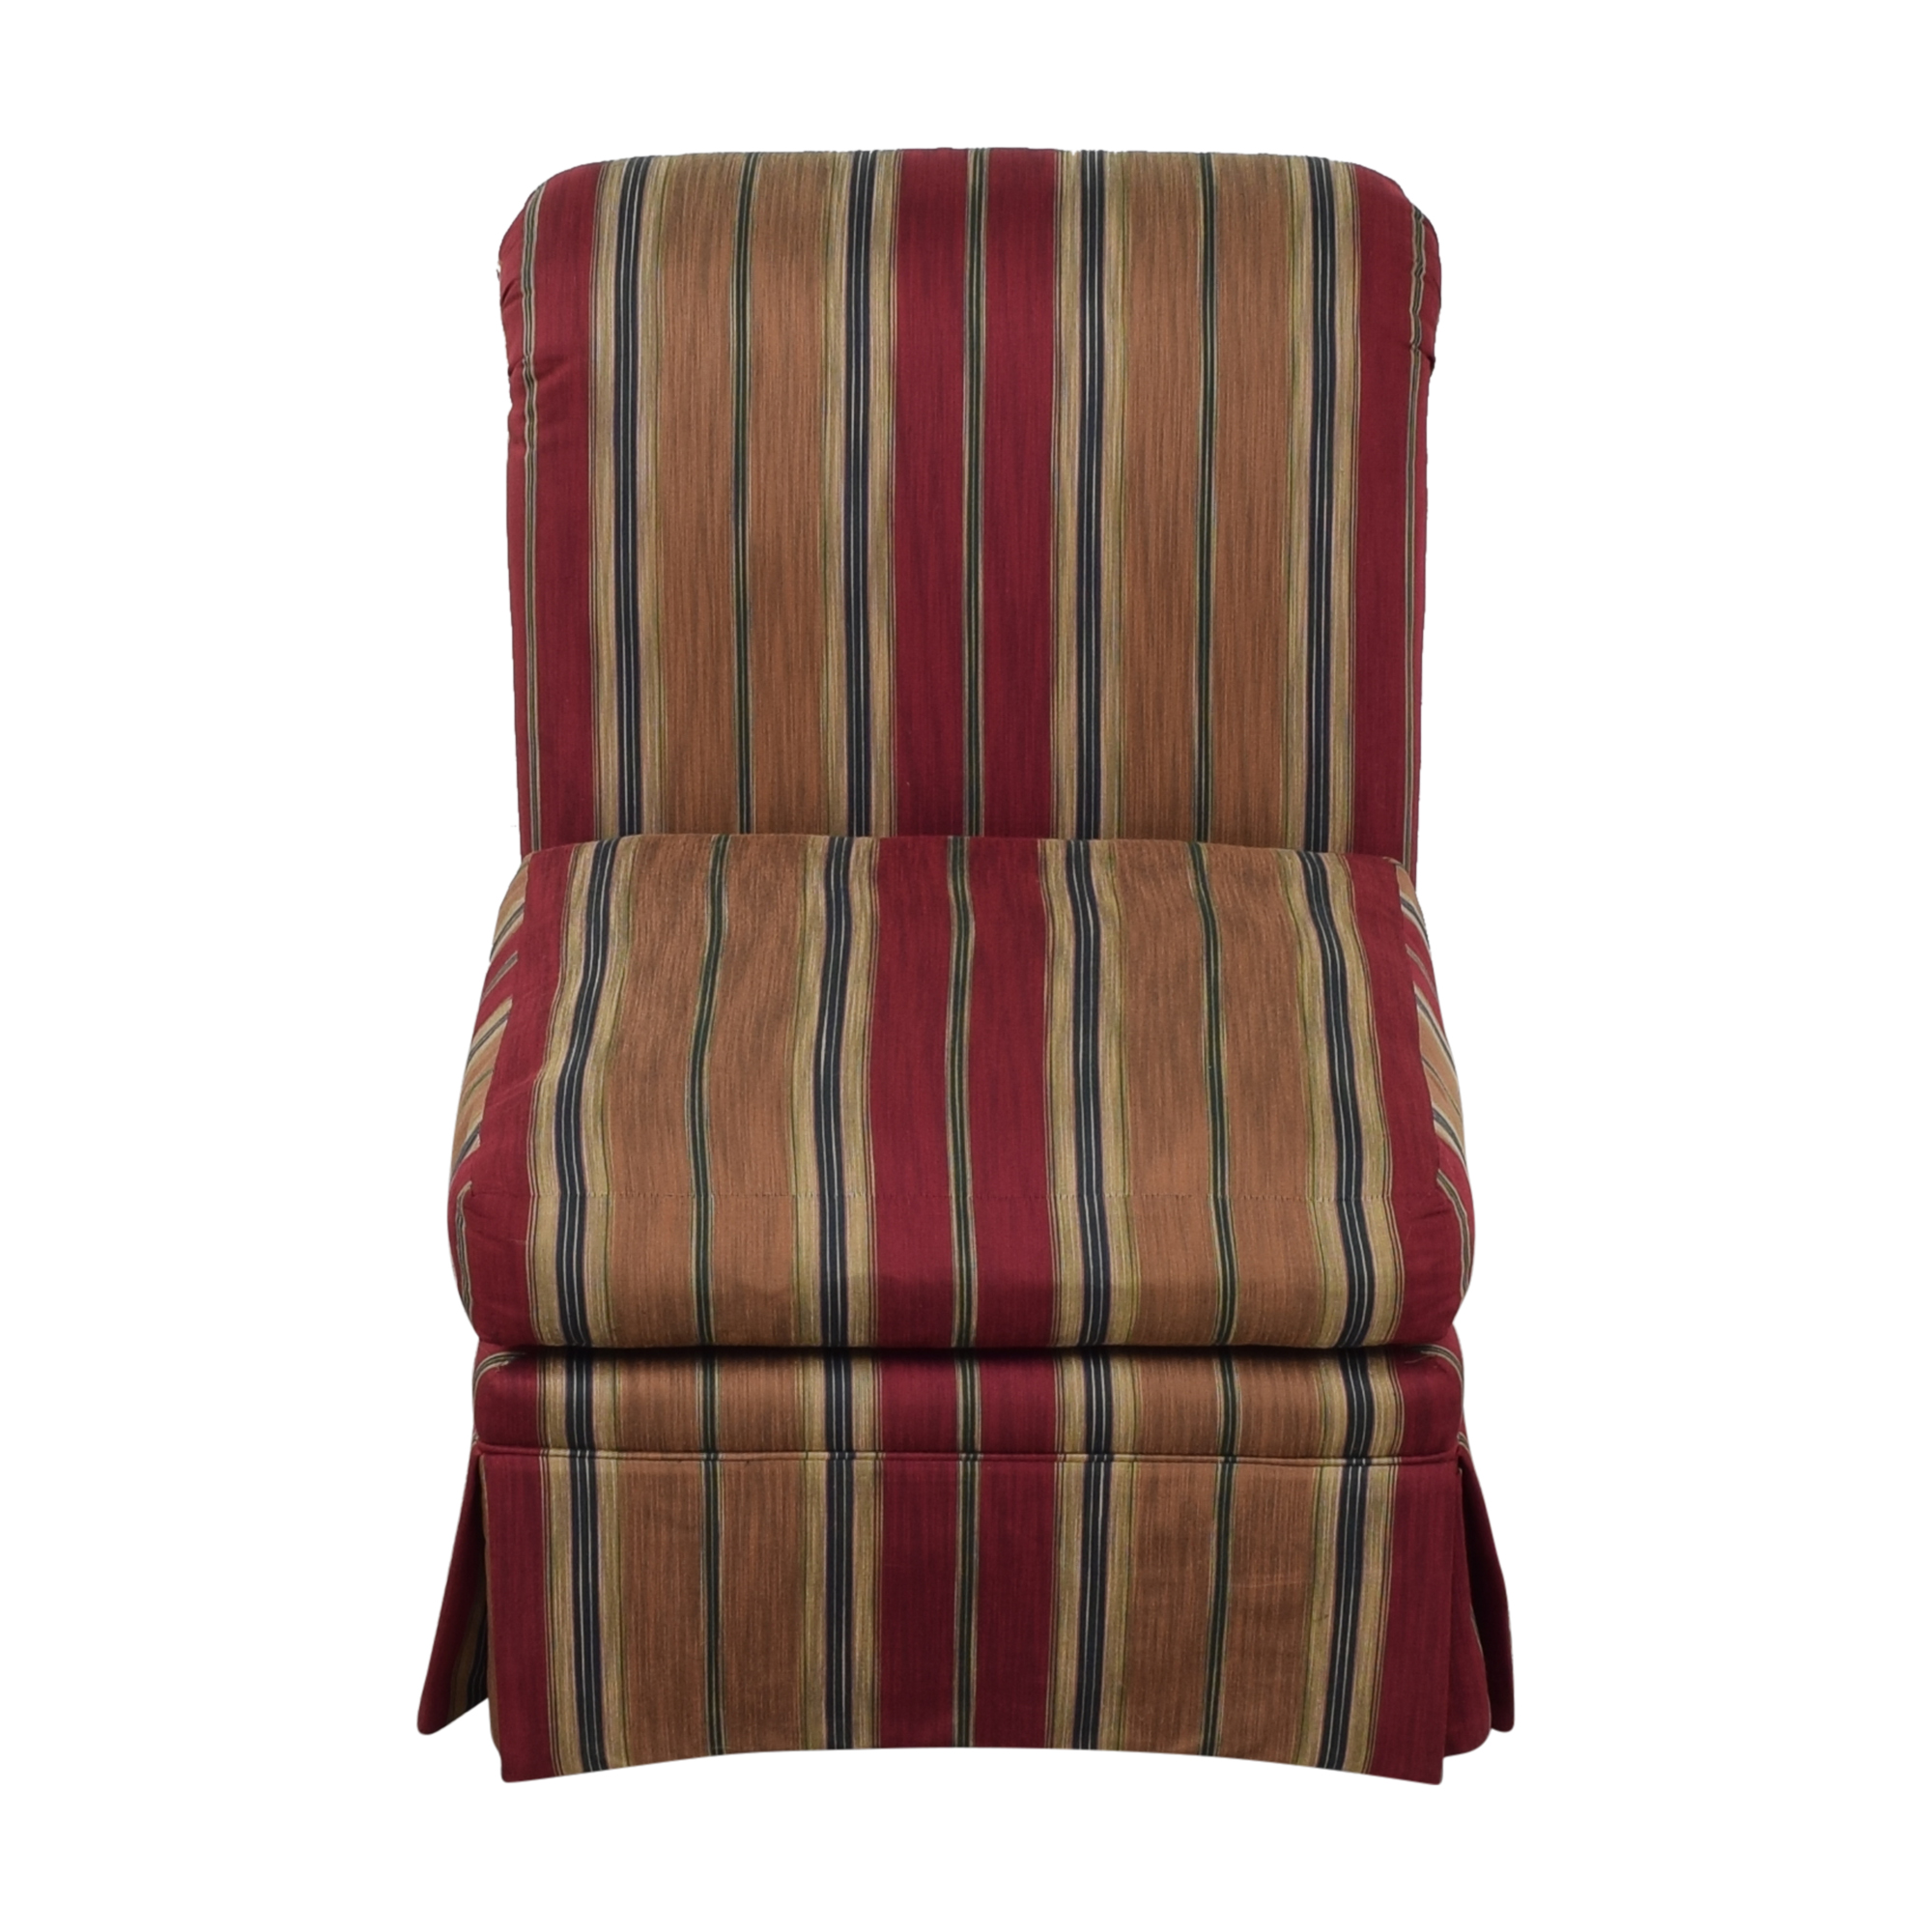 buy J. Royale Furniture Upholstered Armless Chair J. Royale Furniture Dining Chairs